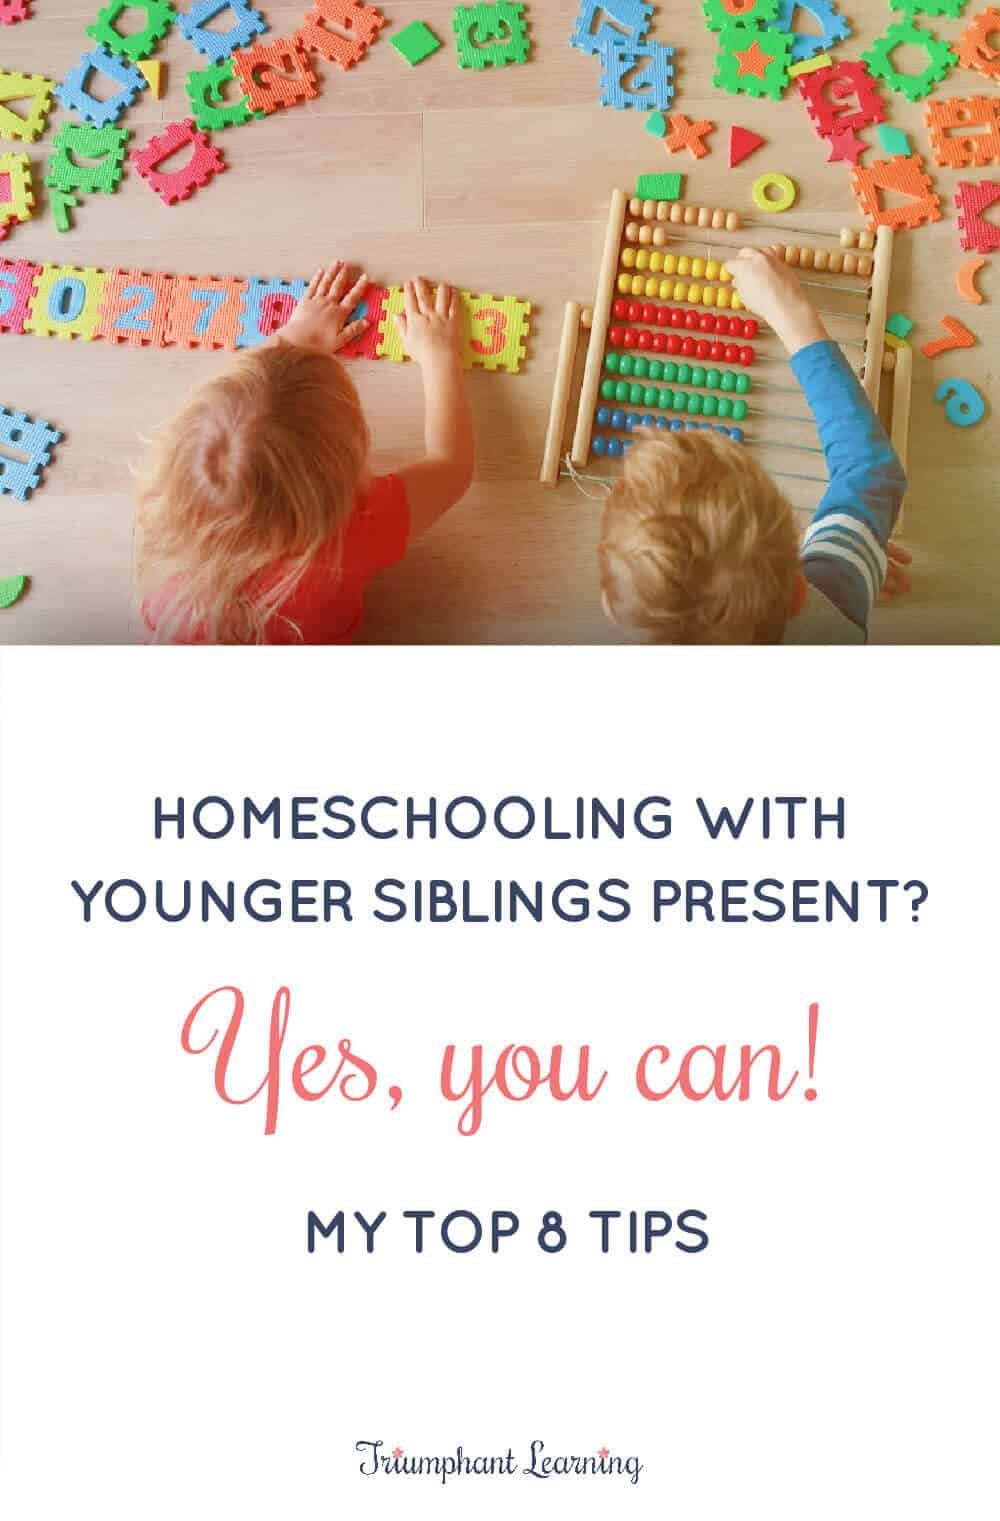 Homeschooling with younger siblings around can be distracting. Learn eight strategies for a successful homeschool day with toddlers in tow. via @TriLearning